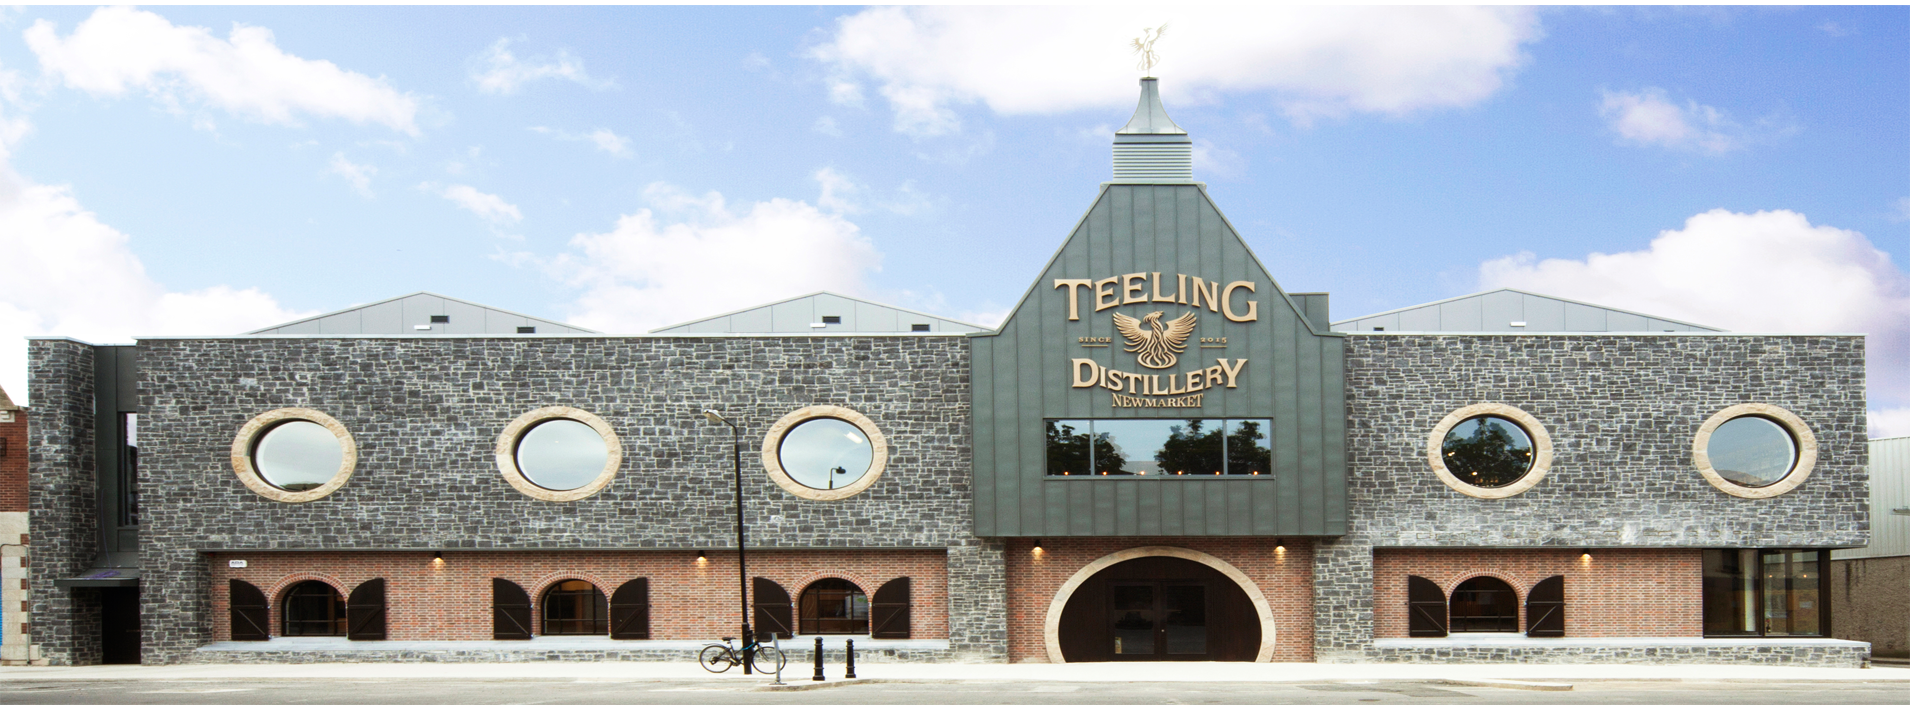 Landscape image of the new The Teeling Whiskey Distillery, Dublin